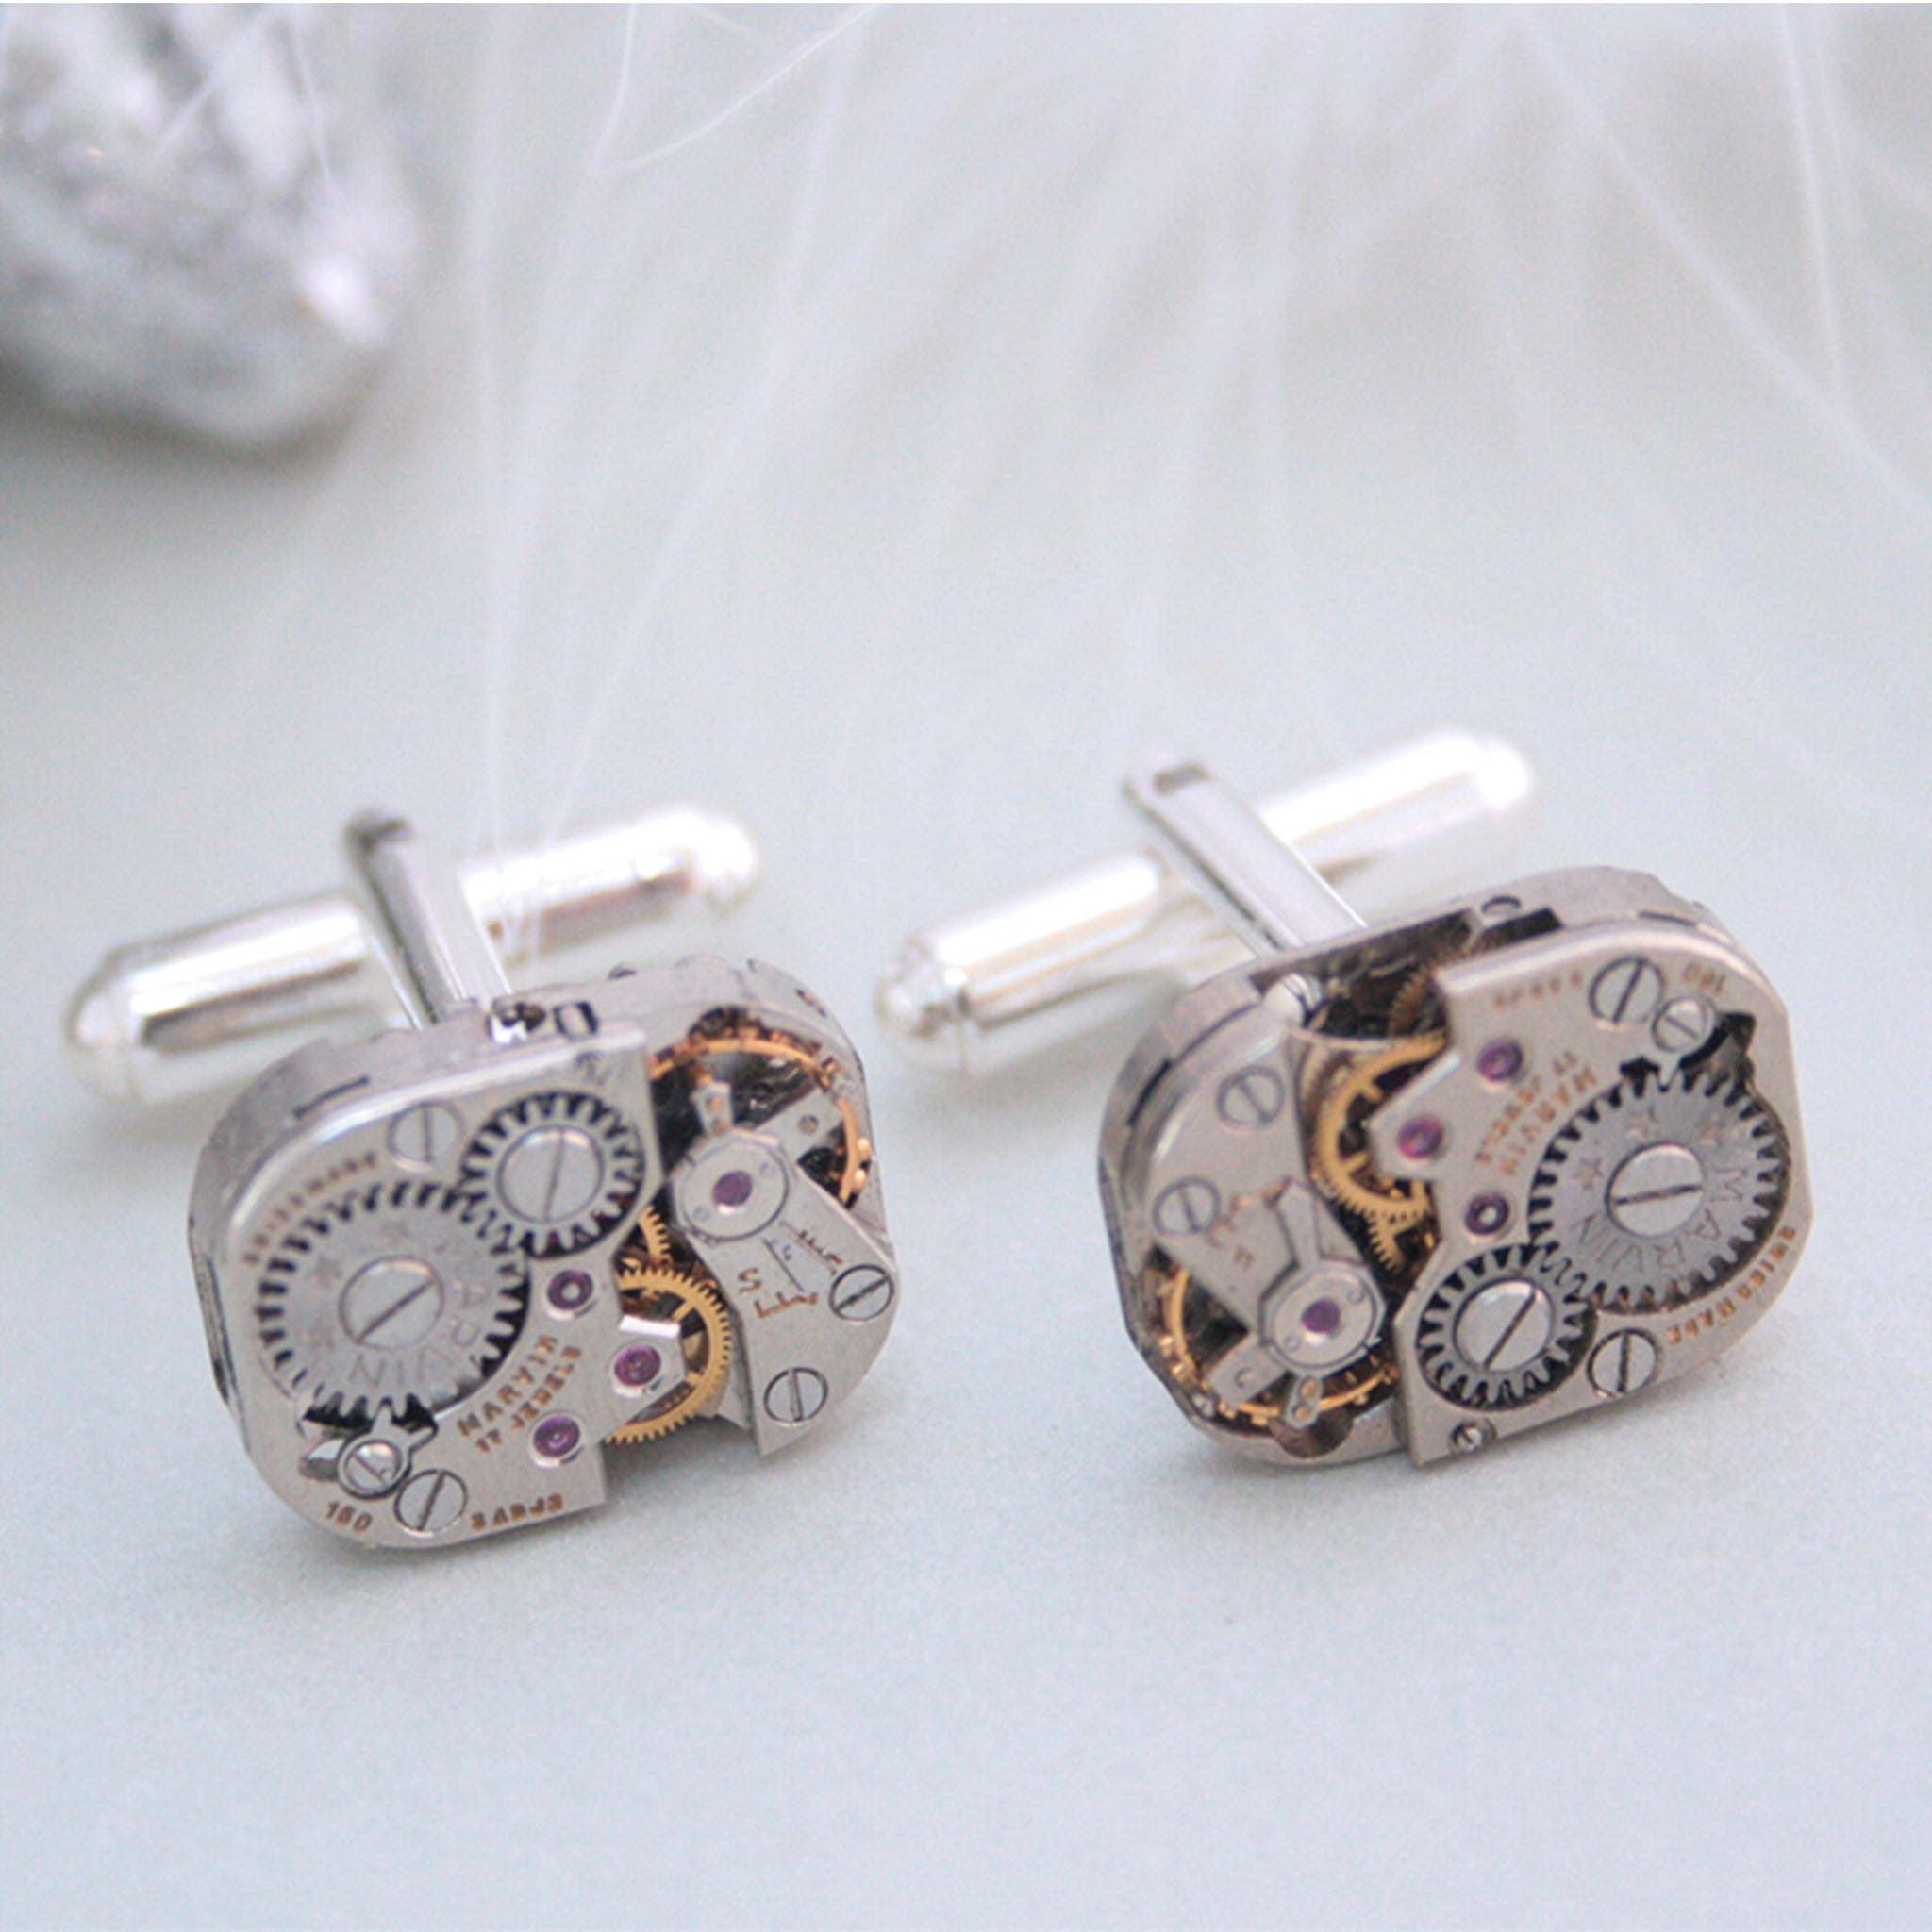 Cool Cufflinks for Watch Lovers